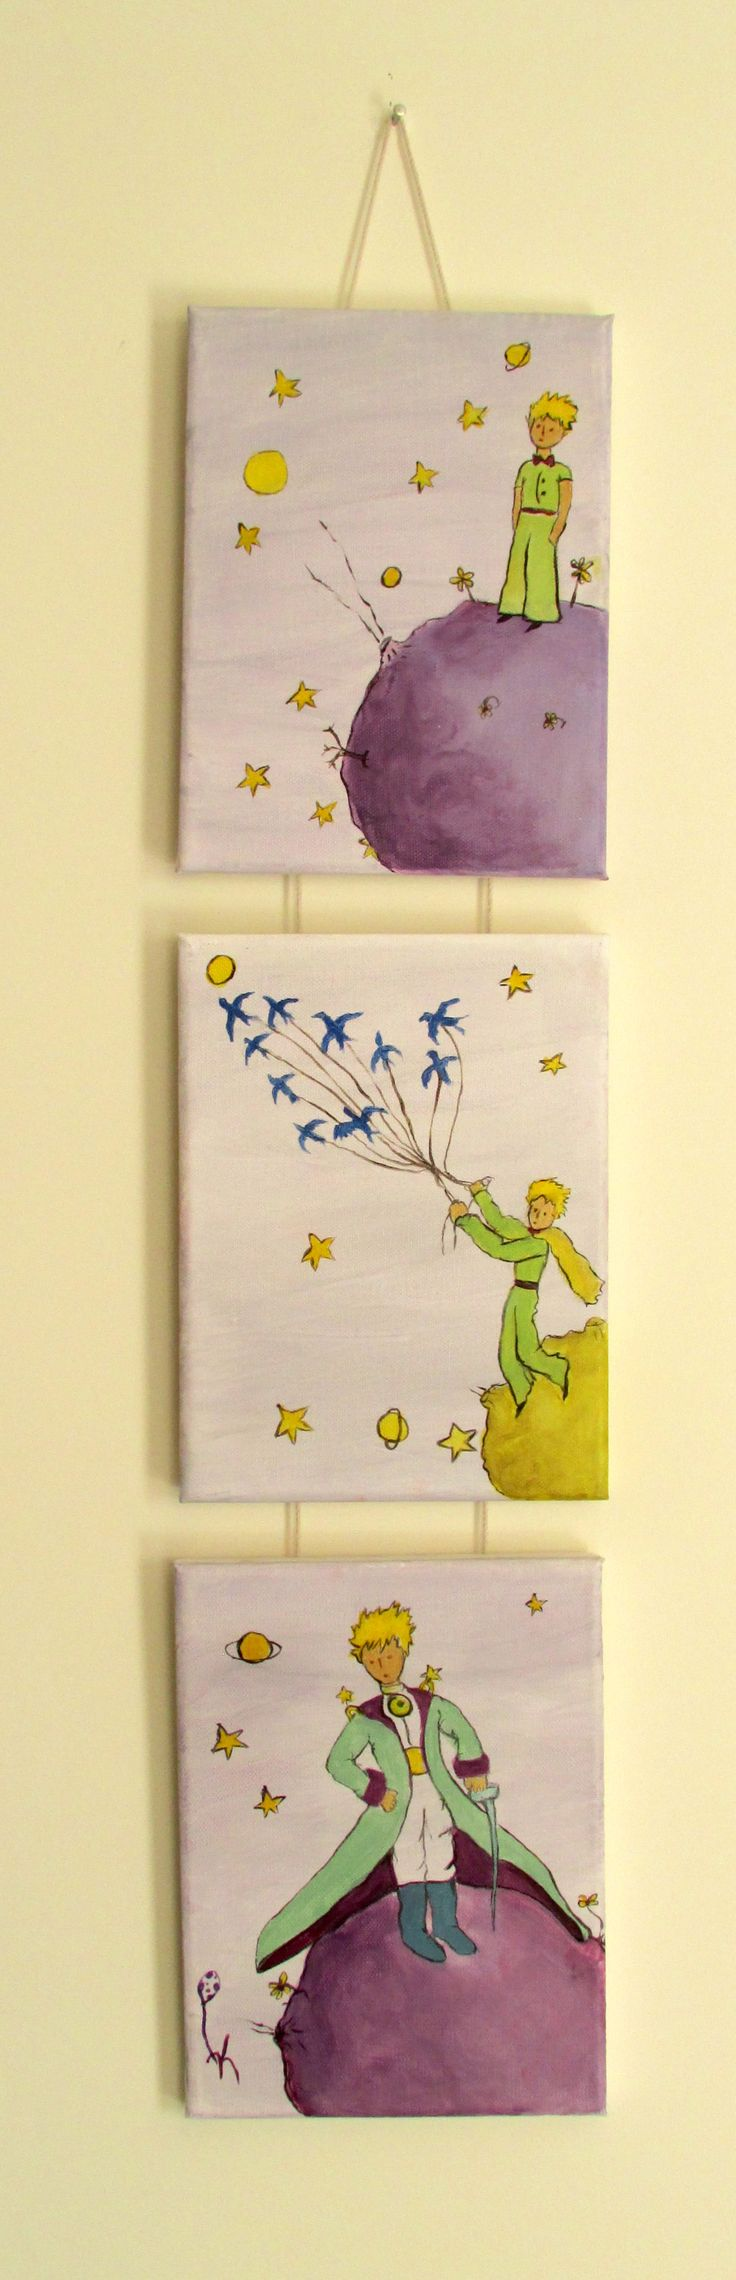 set of 3 Little Prince hanging all together with a rope